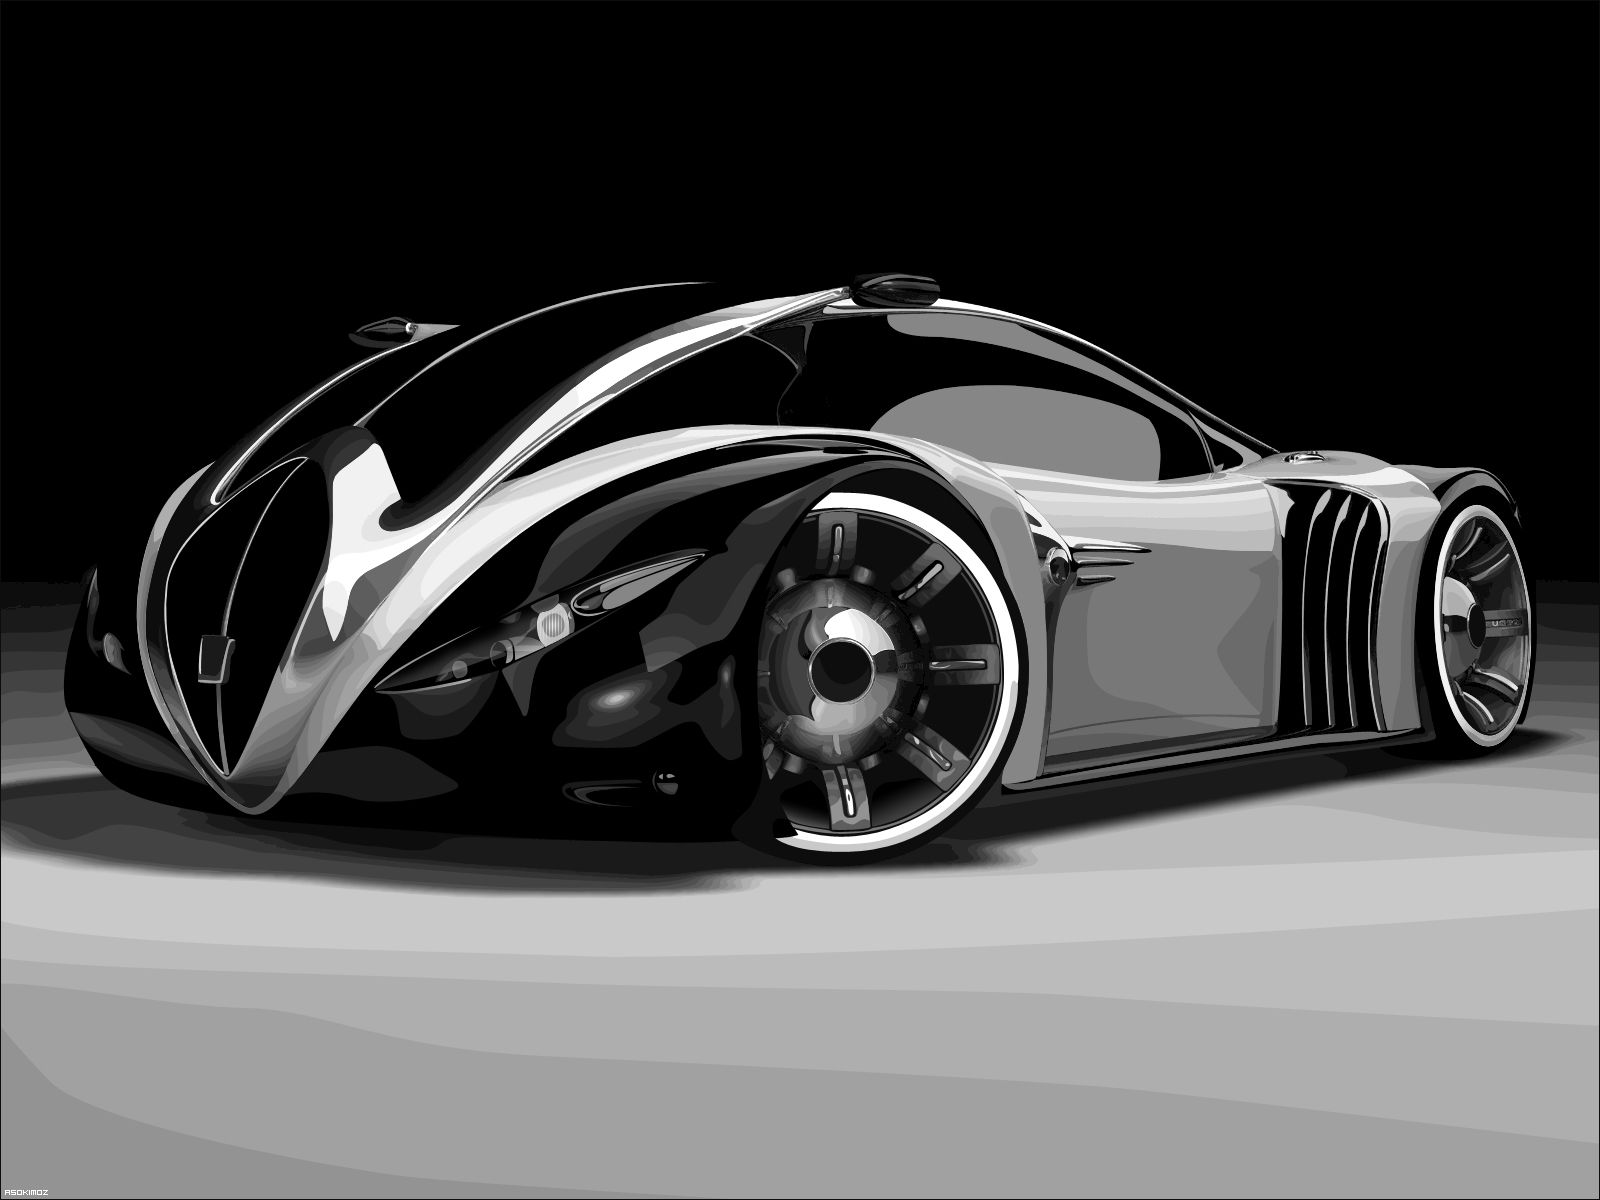 Concept Cars 75 Concept Cars Of The Future Incredible Design Concept Cars Concept Car Design Futuristic Cars Design